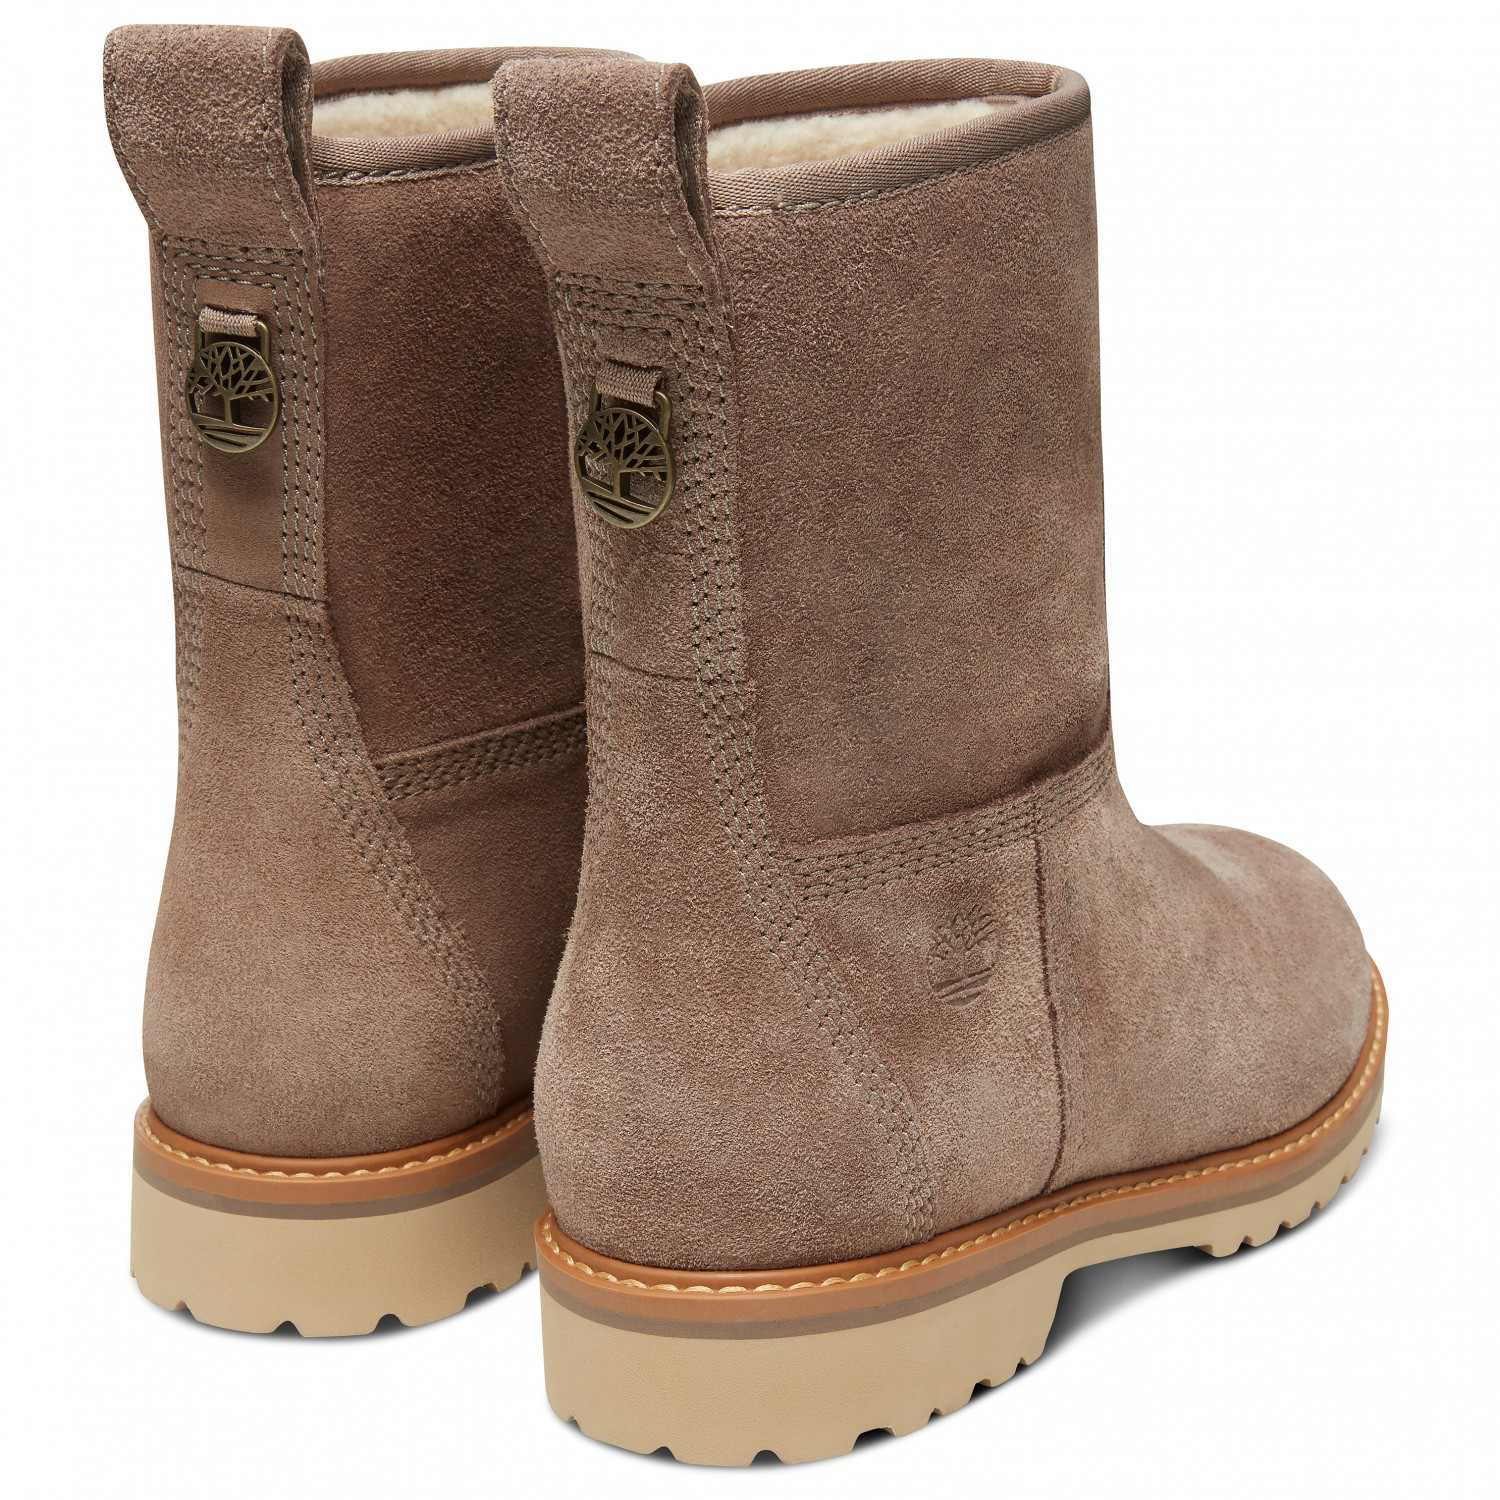 Timberland Women's Chamonix Valley Winter Winter boots Chocolate Brown | 10 (US)